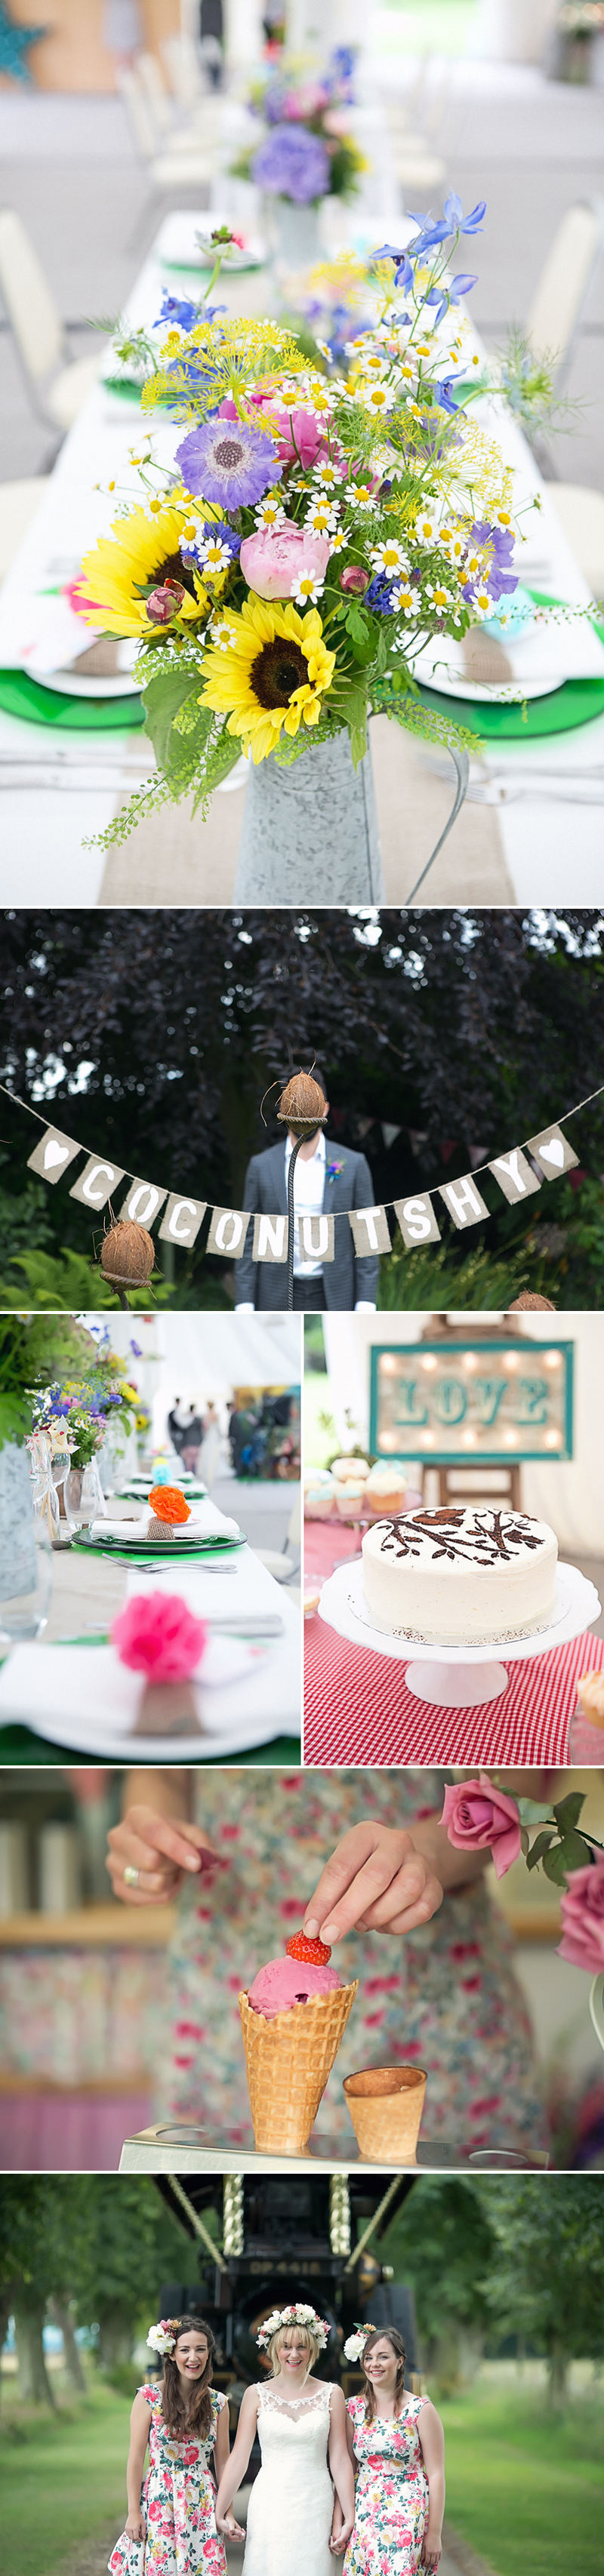 village-fete-themed-wedding-styled-shoot-kenton-hall-estate-nick-ilott-photography-coco-wedding-venues-010